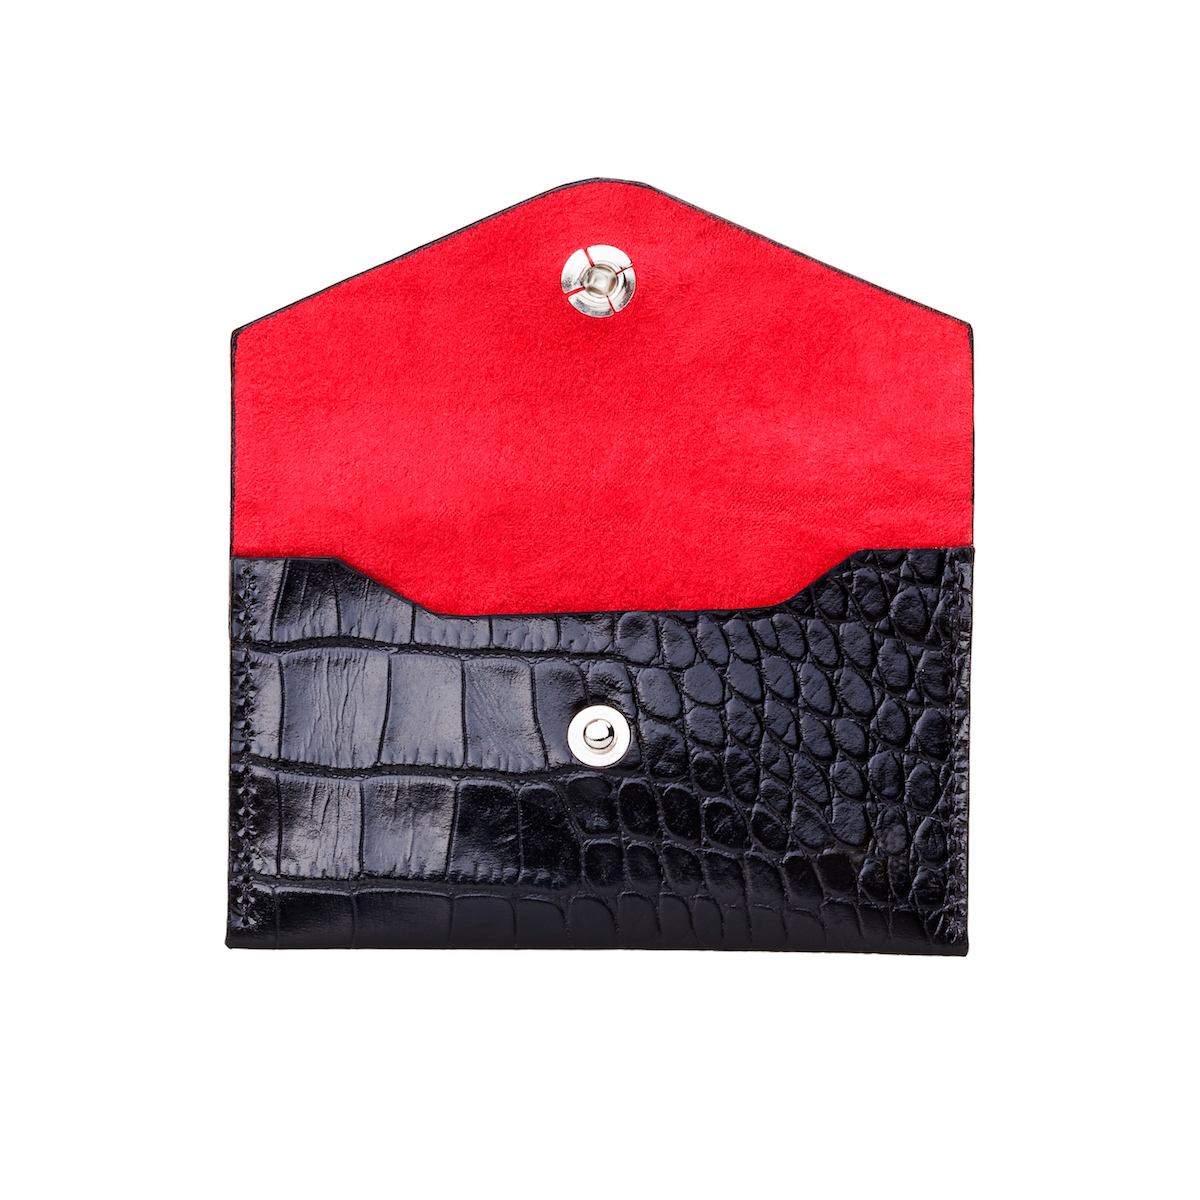 Business Card Holder, Croco Leather Black/Red, MAISON JMK-VONMEL Luxe Gifts